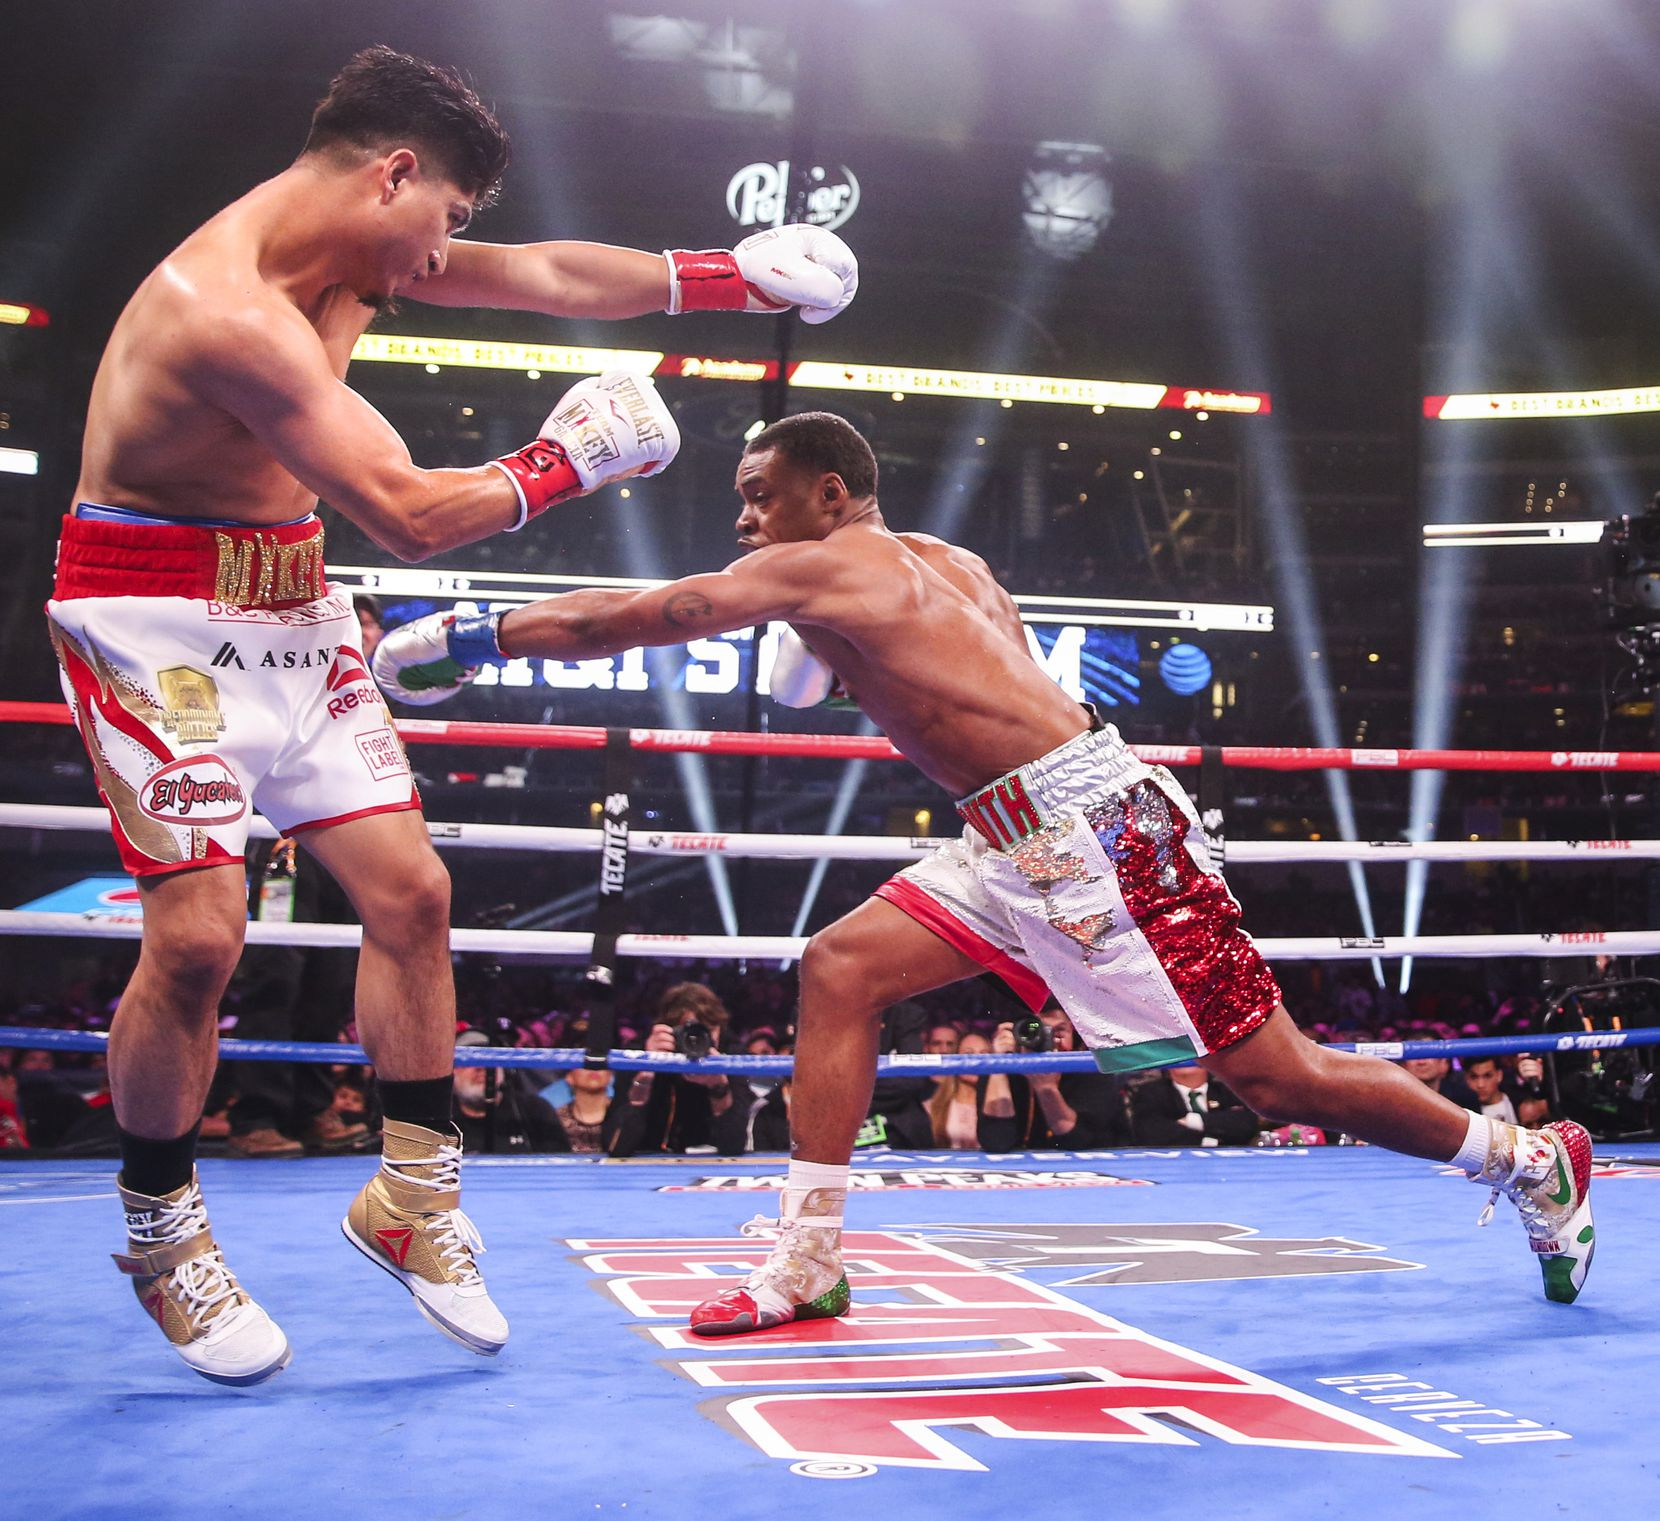 Mikey Garcia dodges a punch by Errol Spence Jr. during a IBF World Welterweight Championship match on March 16, 2019, at AT&T Stadium in Arlington.